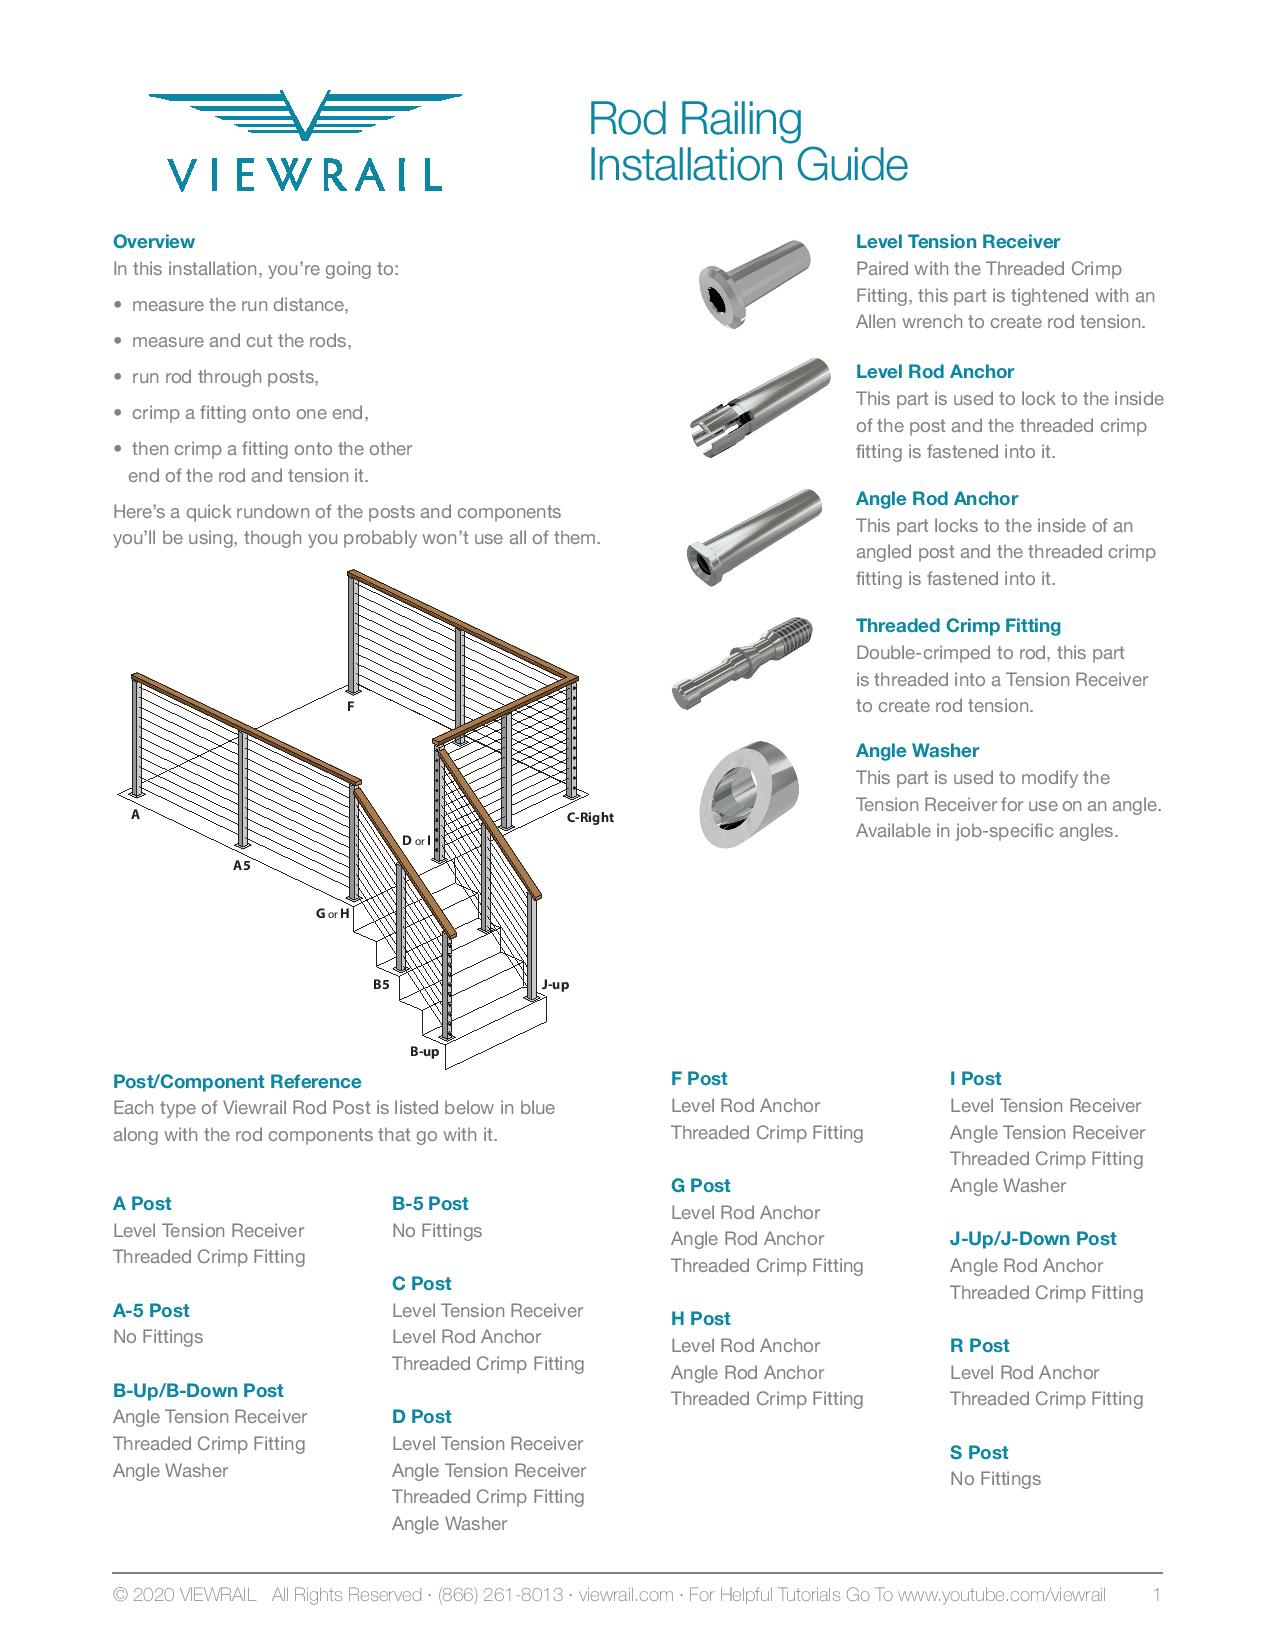 Rod Railing Installation Guide